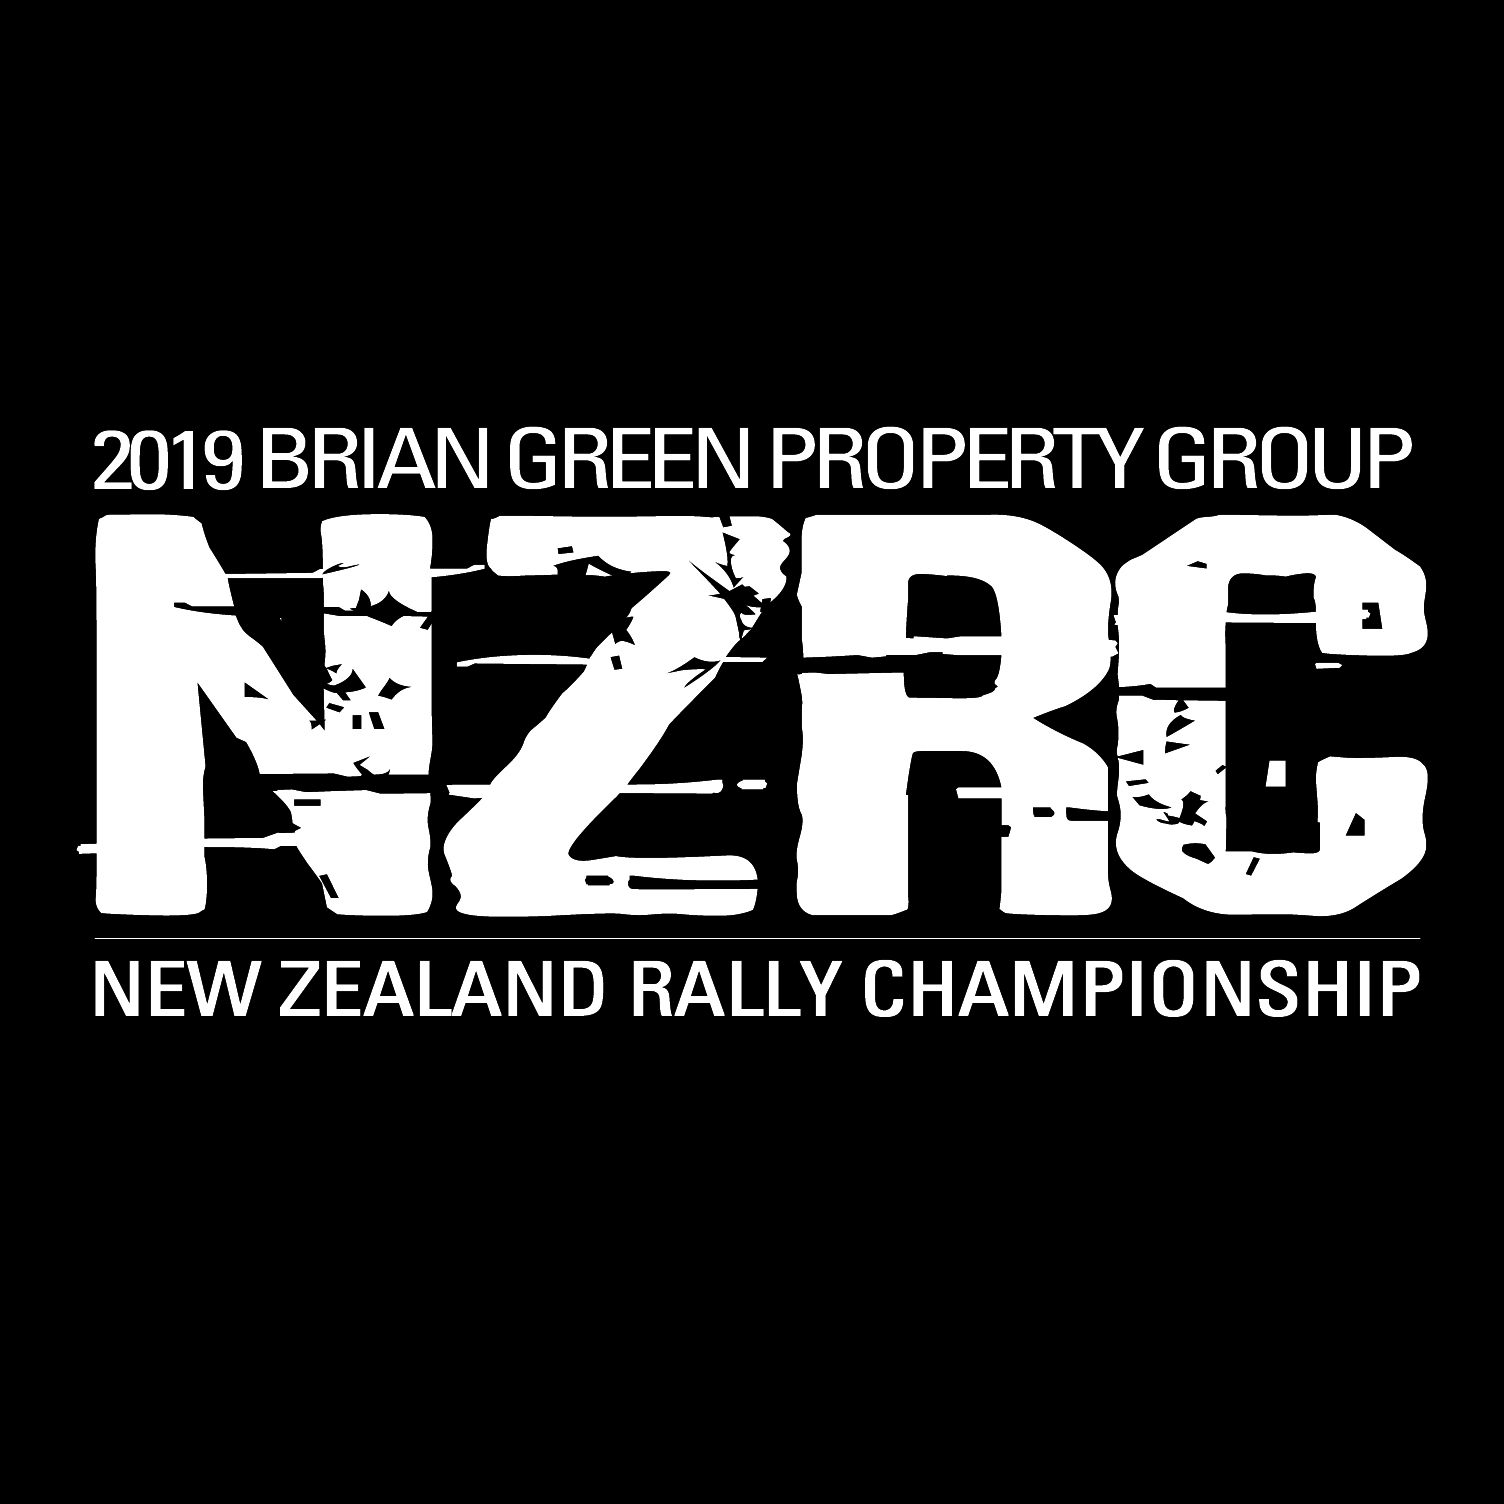 Gull fuels NZ rally drivers | :: Brian Green Property Group New Zealand Rally Championship ::